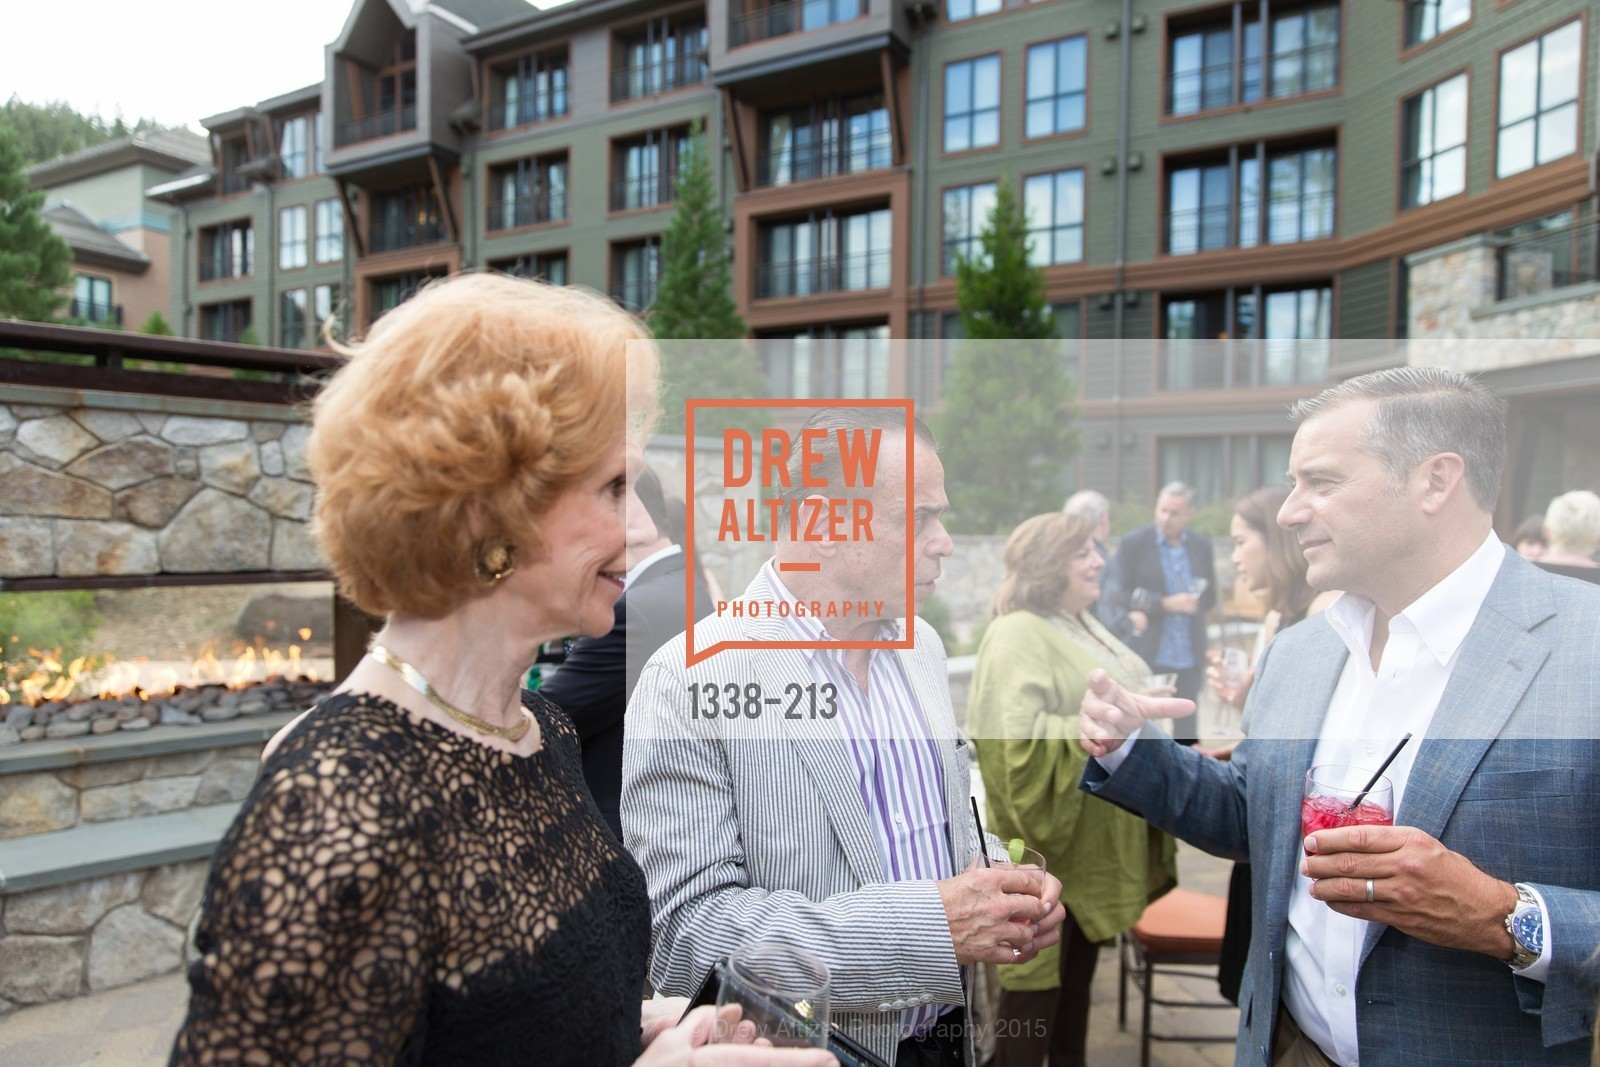 Patricia Jeffries, Boaz Mazor, Aaron Giovara, League to Save Lake Tahoe Sponsor Cocktail Party, Ritz-Carlton, Lake Tahoe, July 31st, 2015